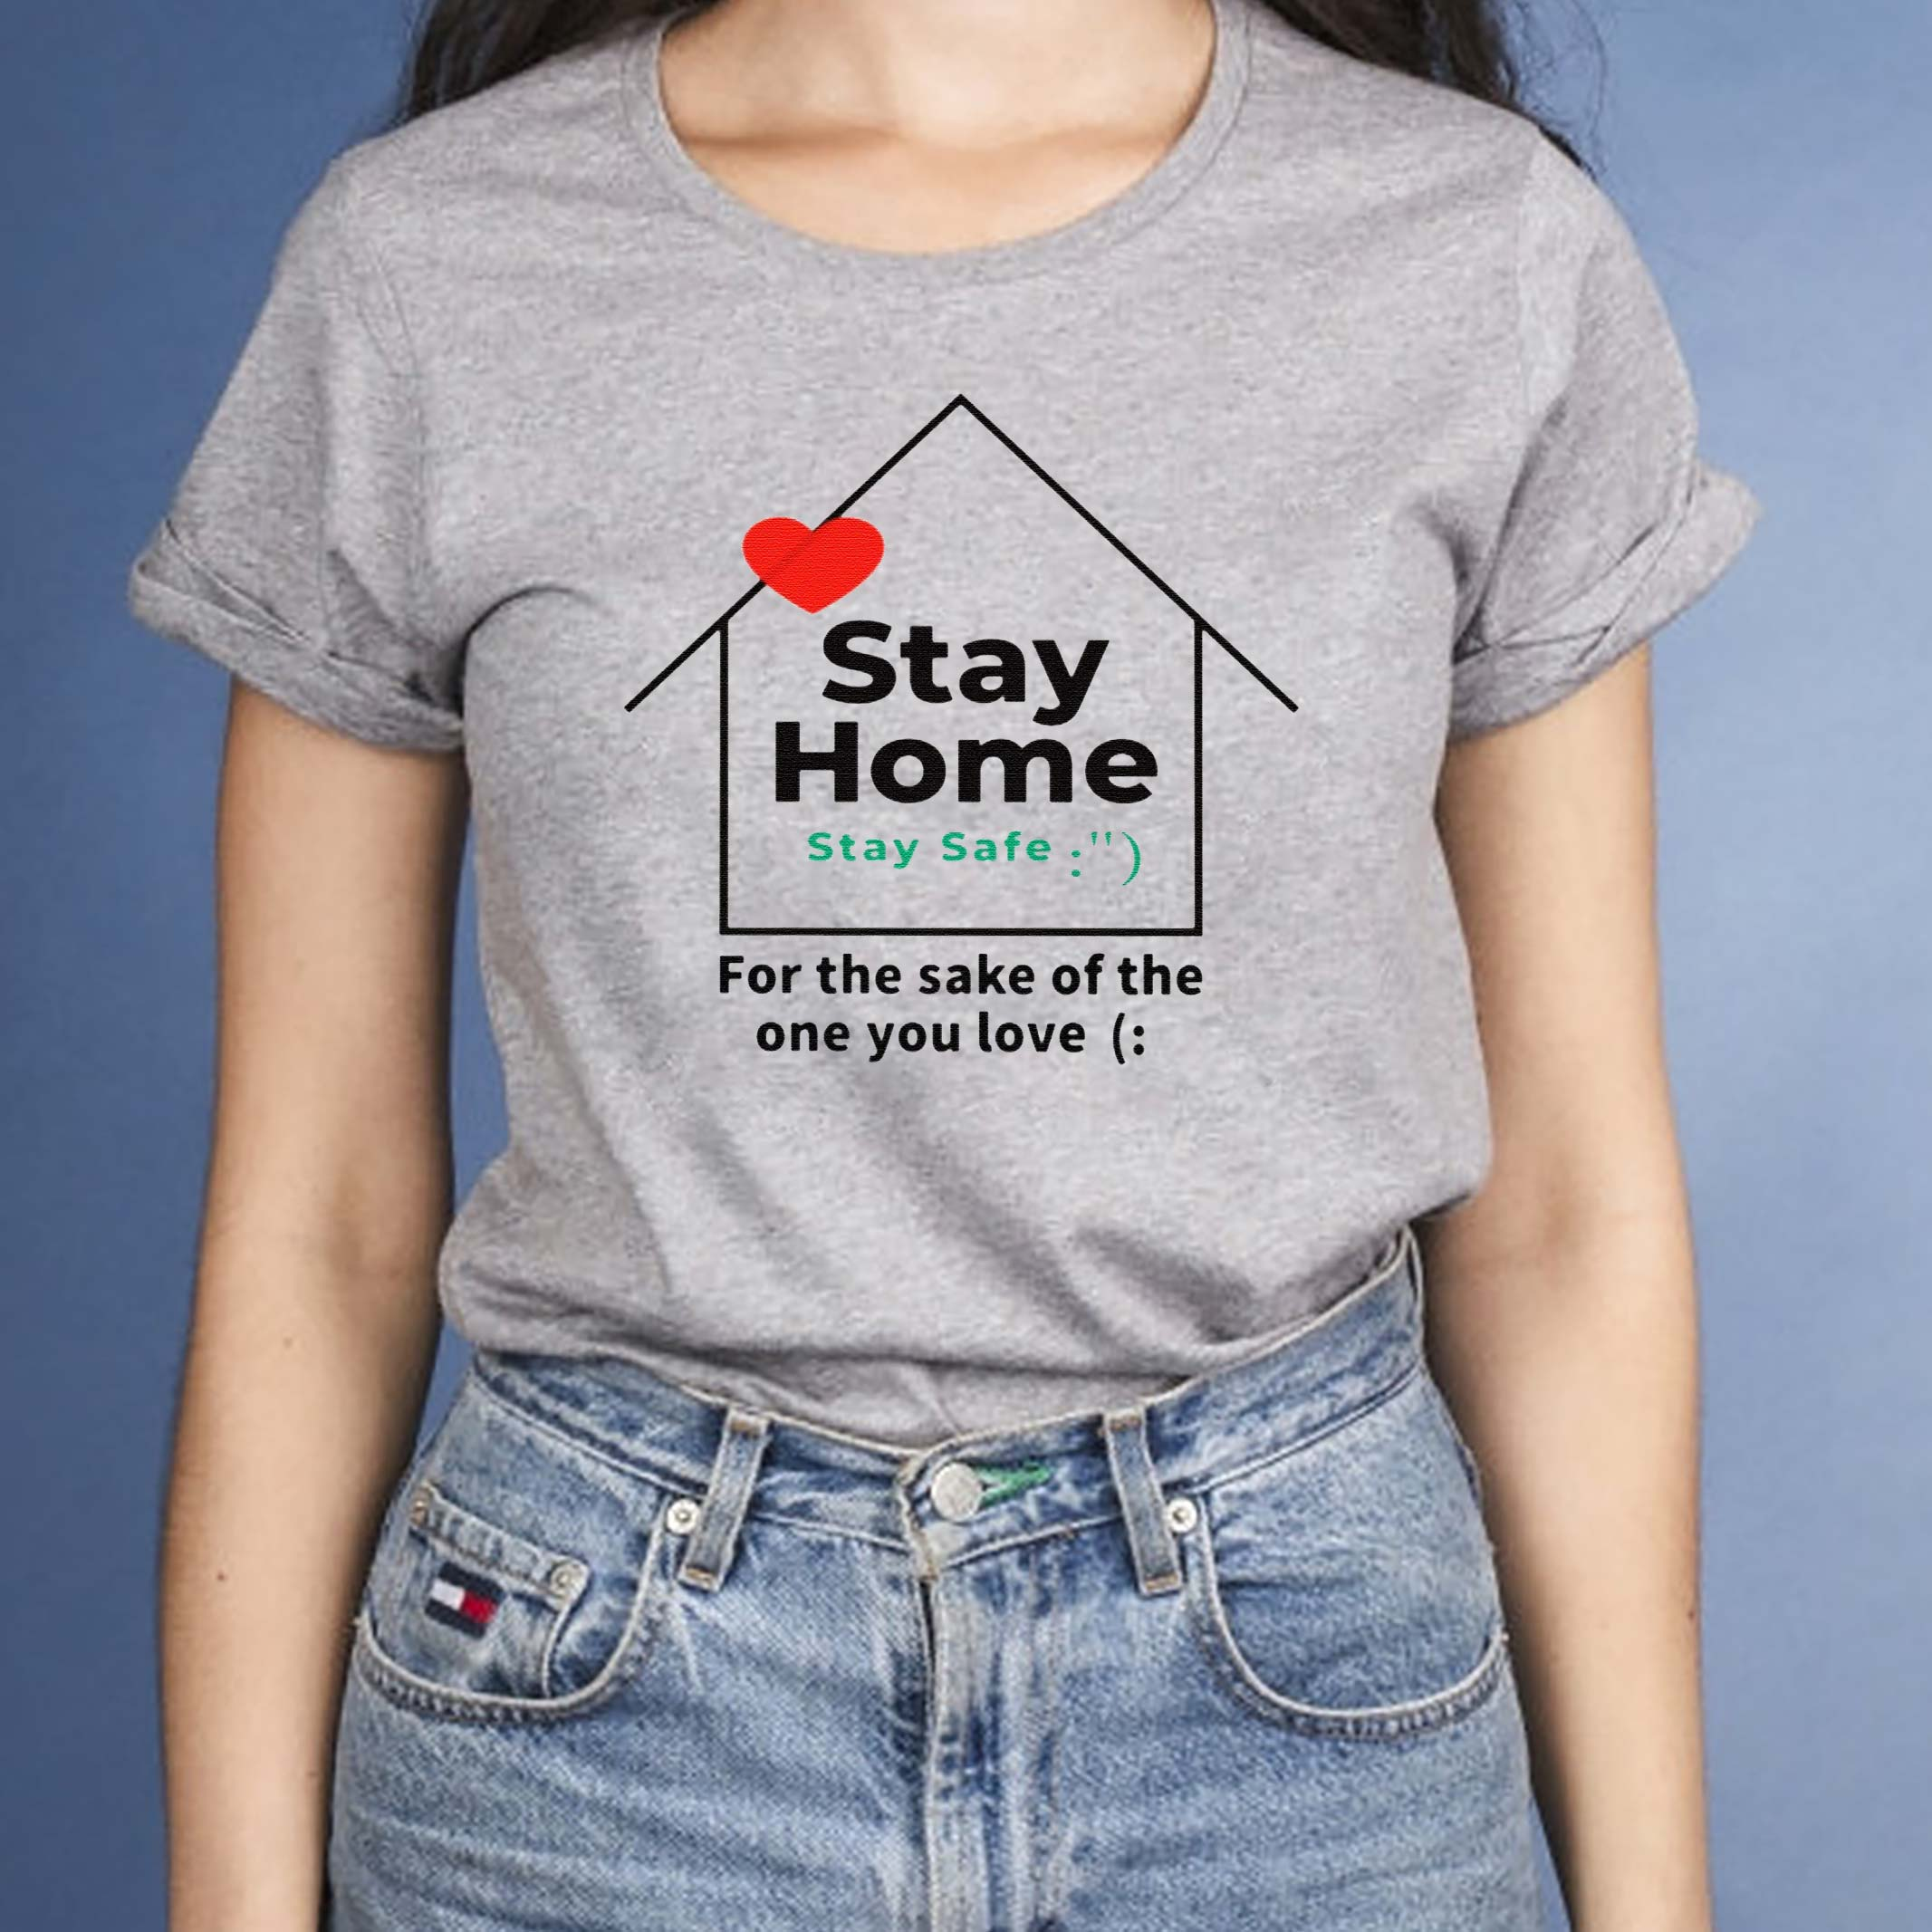 Stay-home-in-a-tshirt